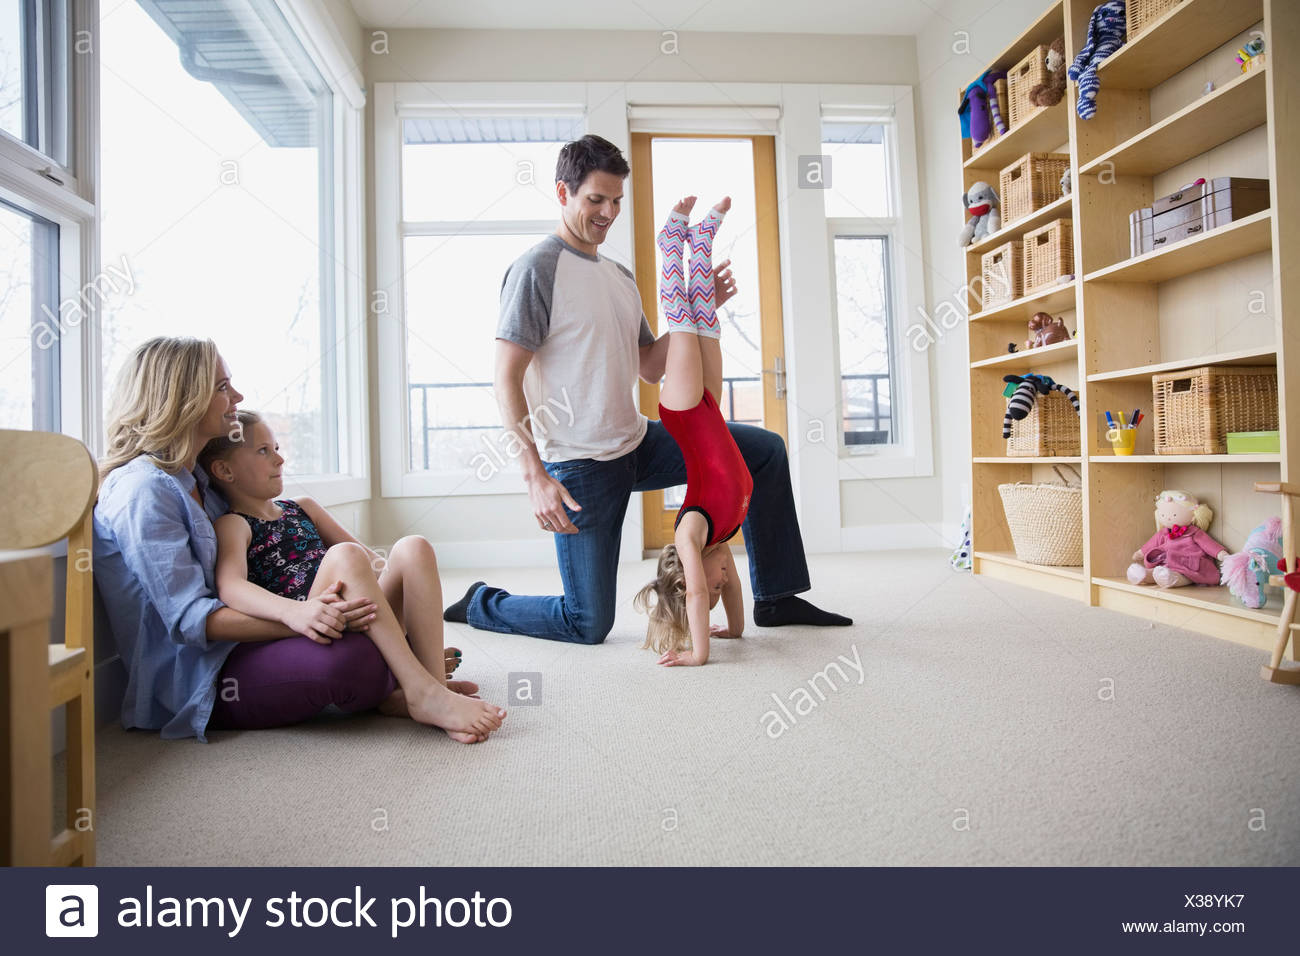 Father helping daughter do handstand in living room - Stock Image